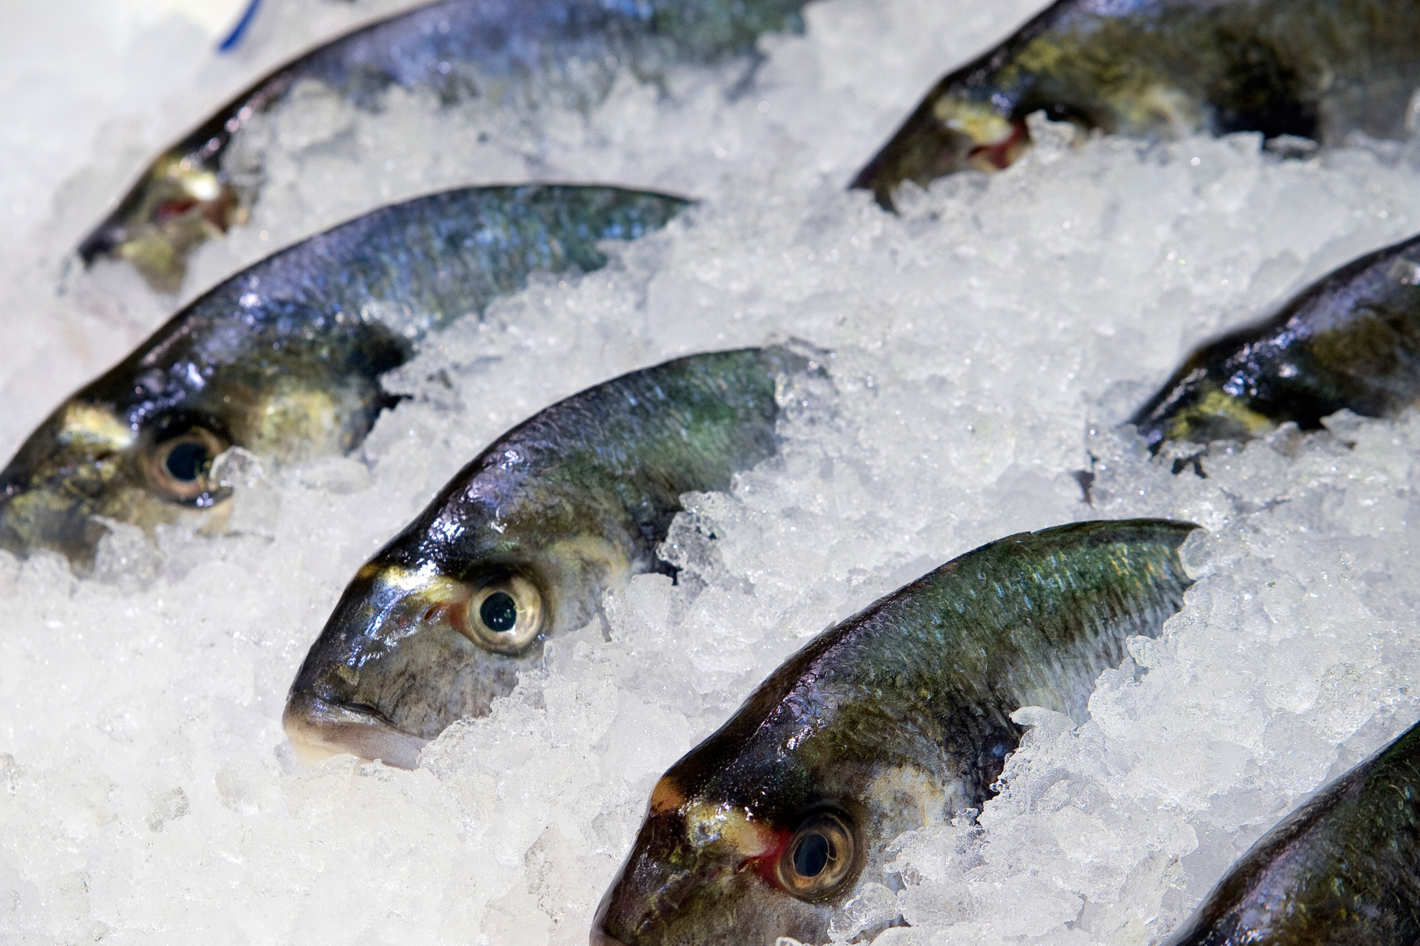 The Friday Five: So Long, and Thanks for All the Fish